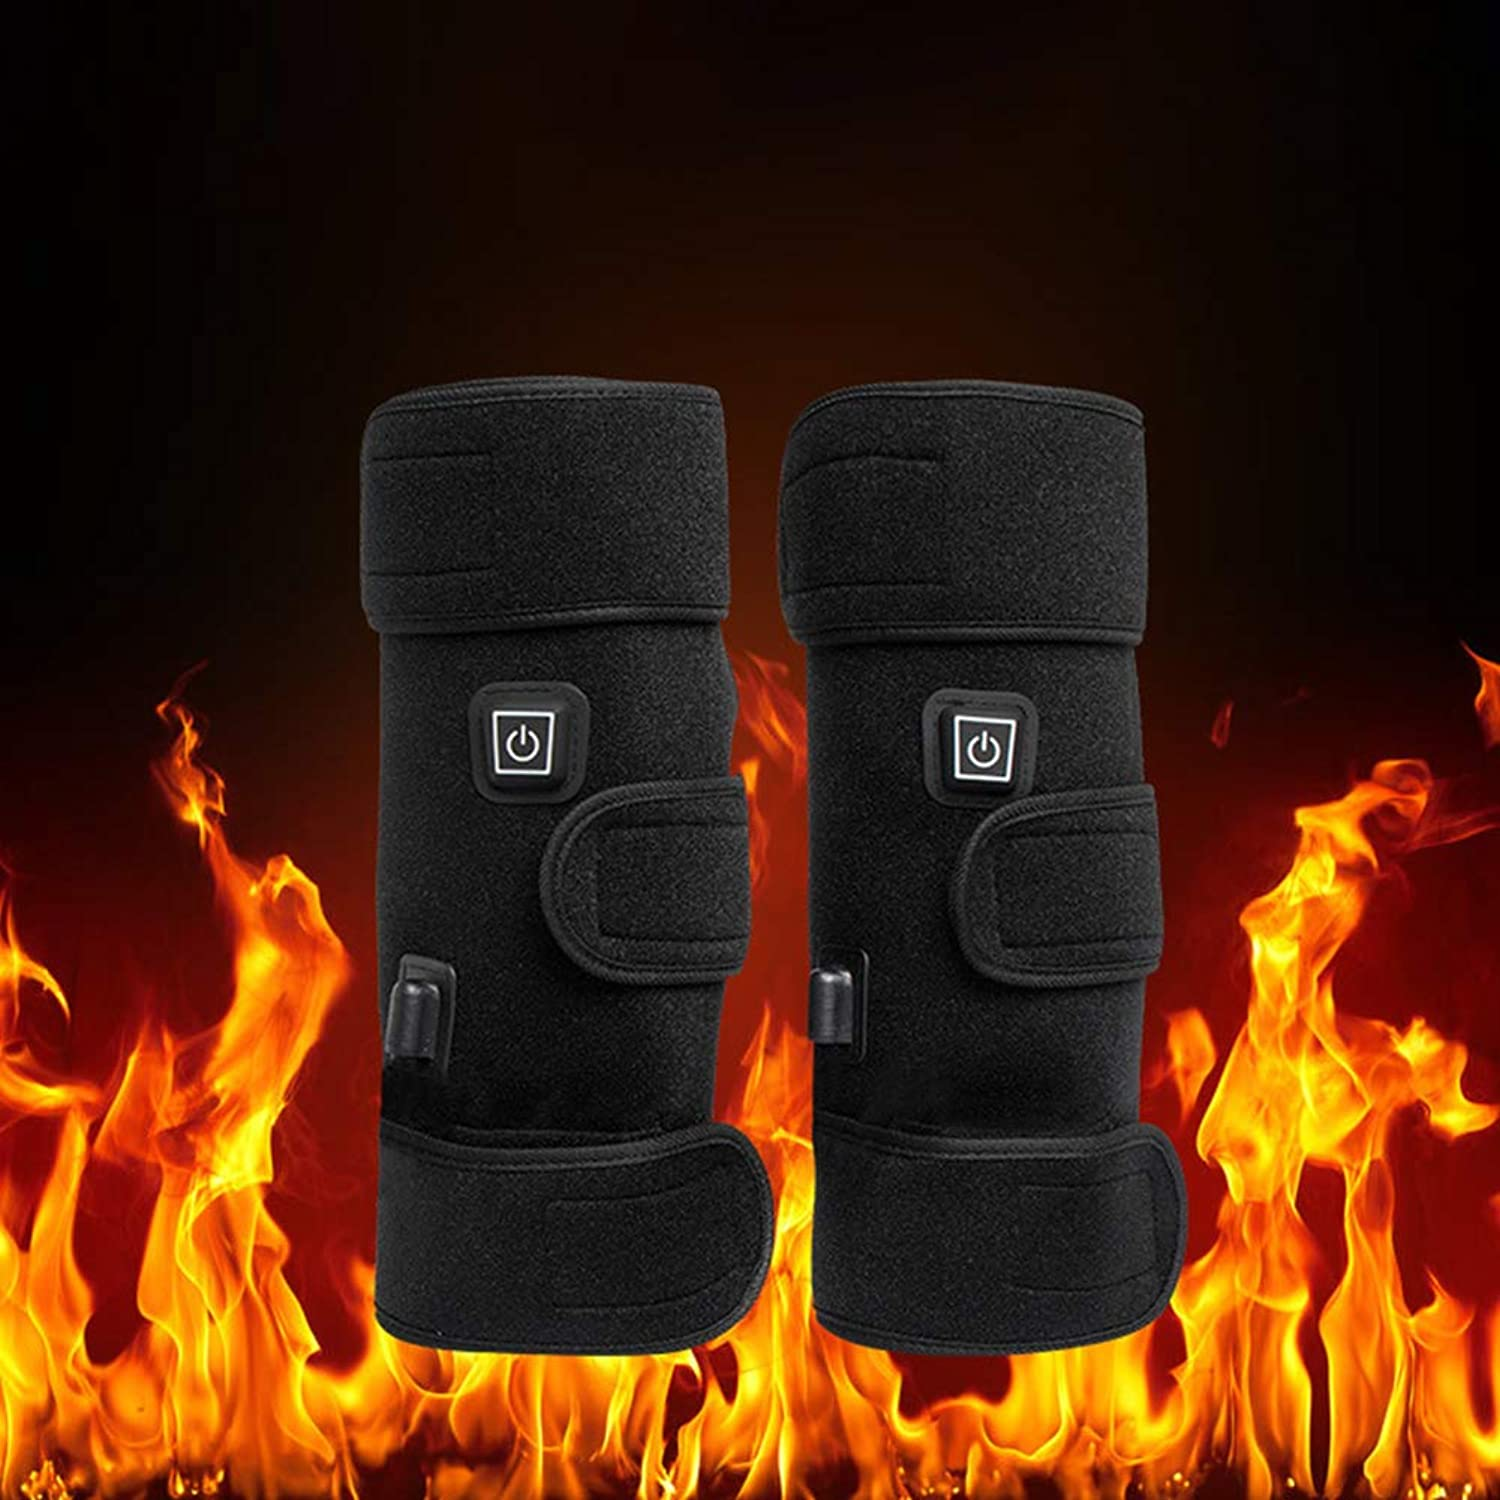 ZKxl8ca 1 Pair Electric Heating Knee Pads Winter Infrared Arthritis Rheumatism Therapy